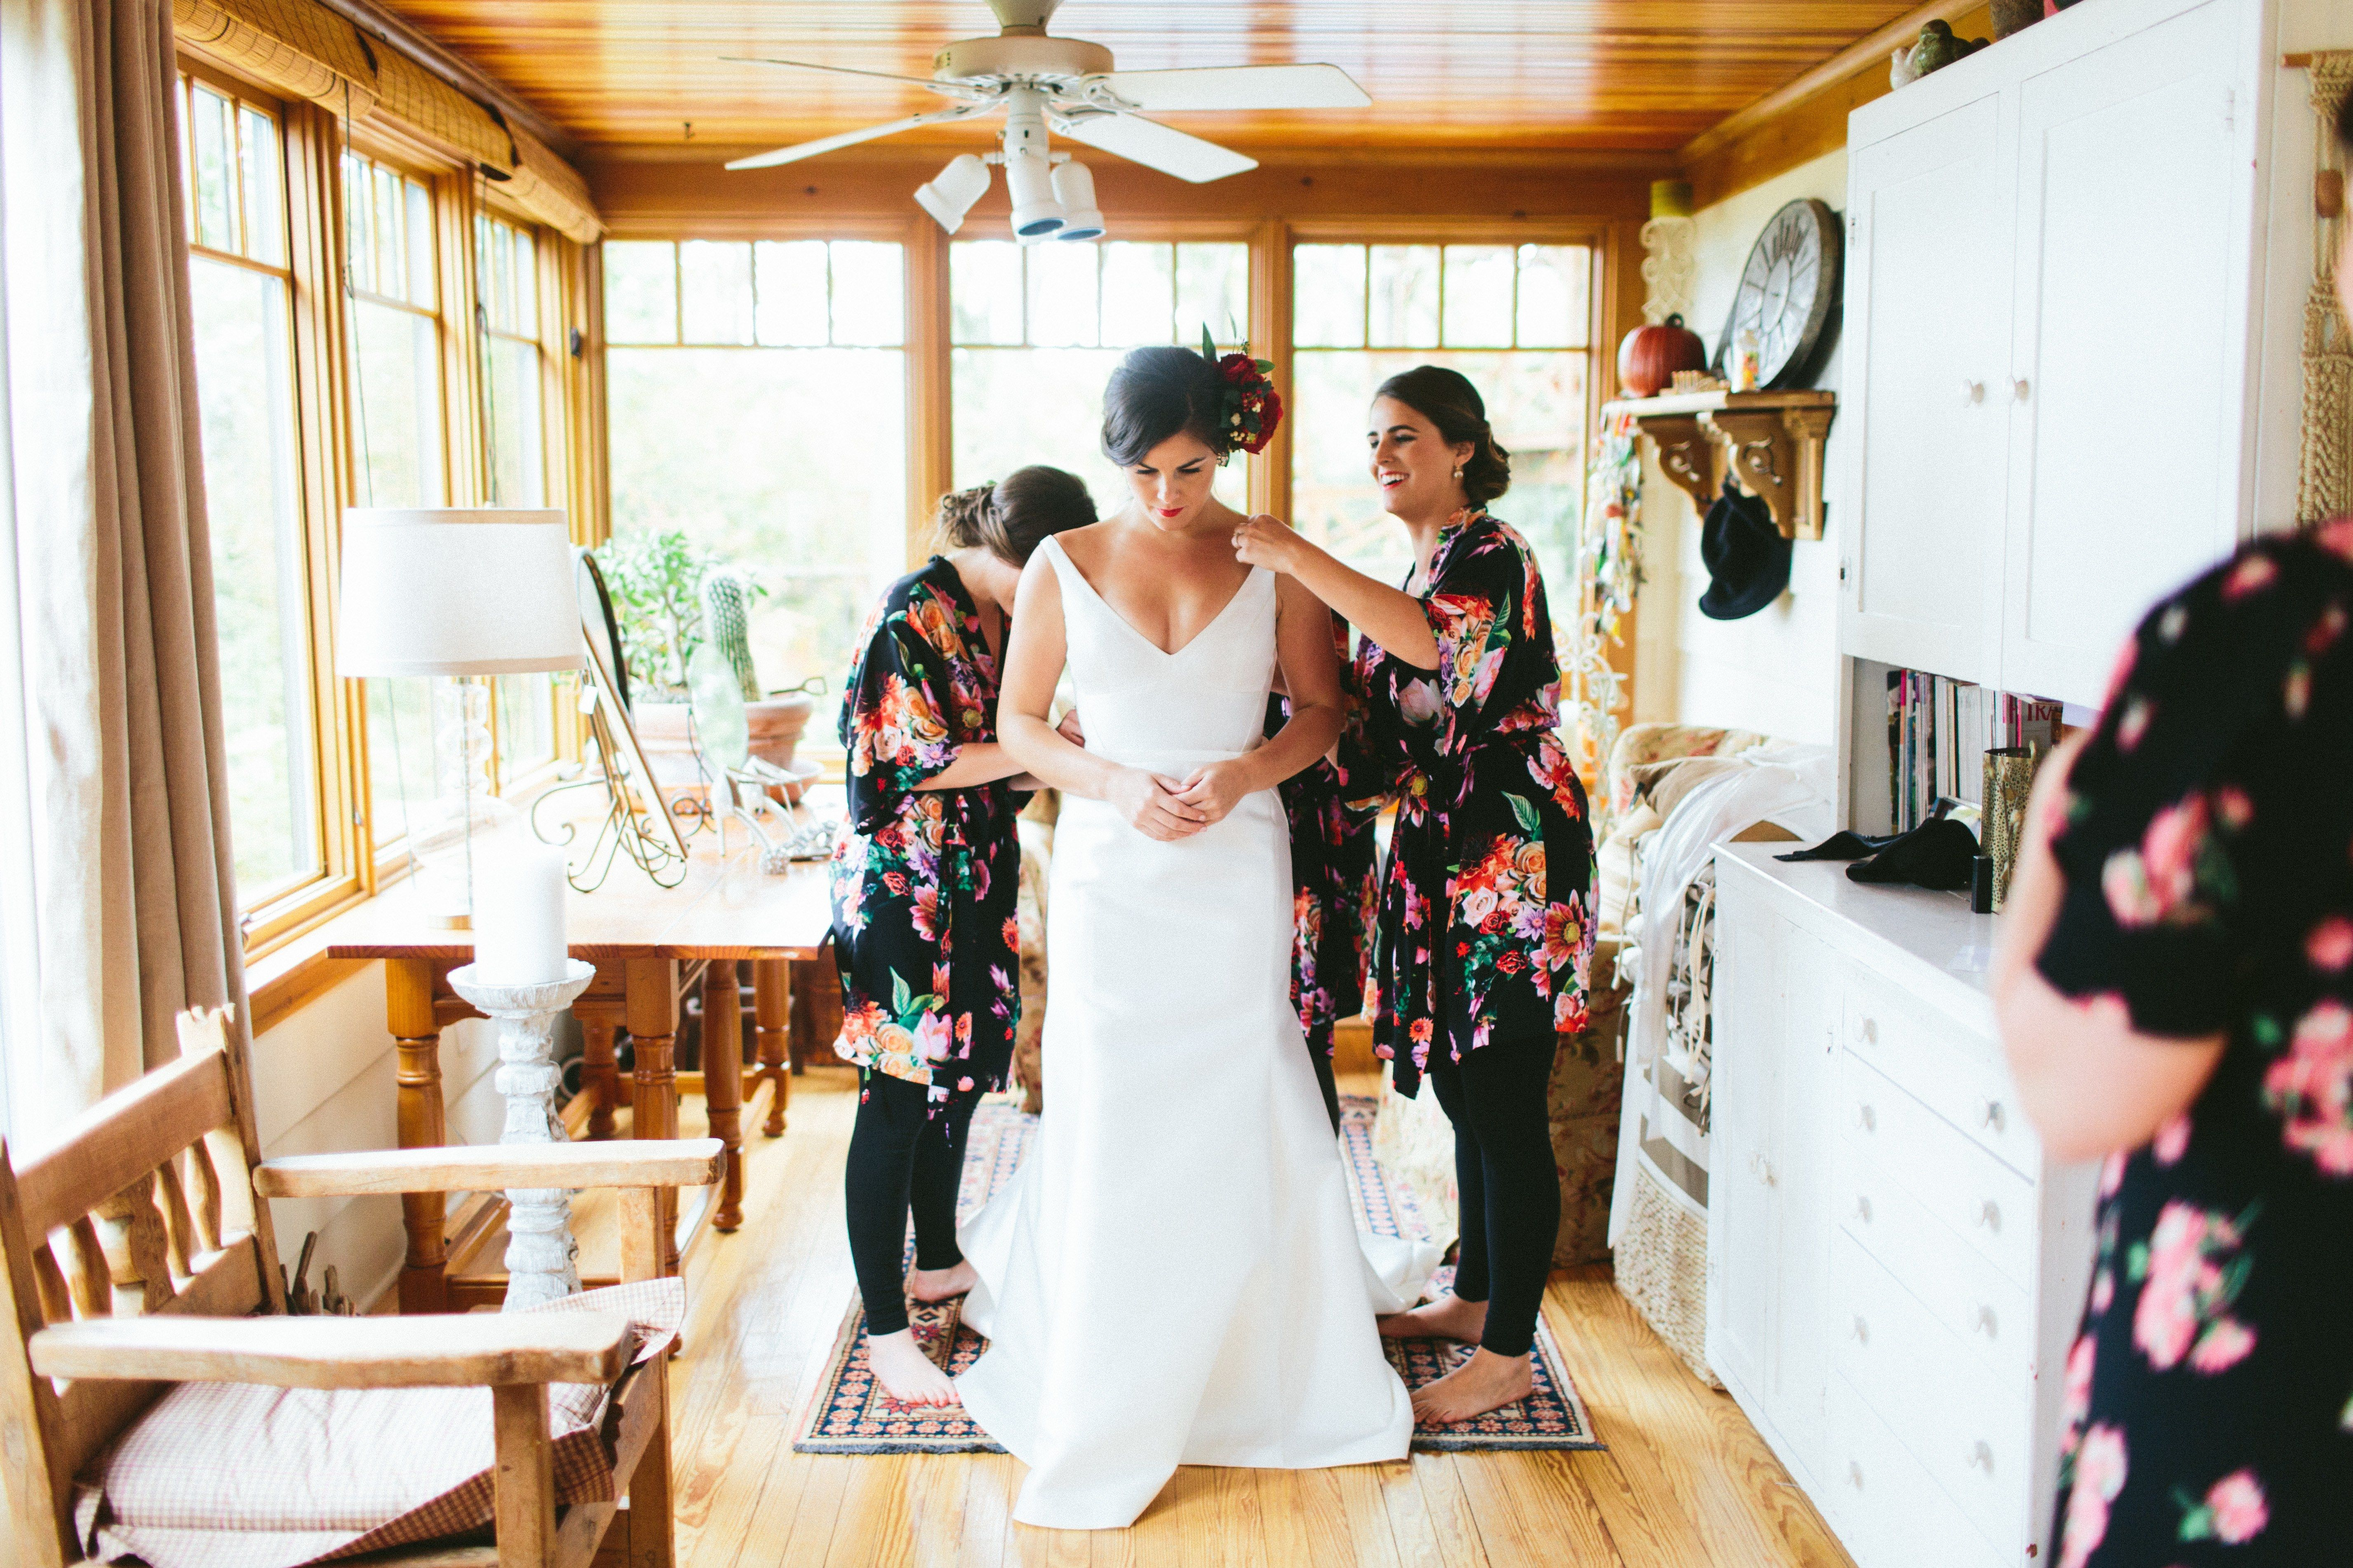 Renting wedding dresses  Should You Rent Your Wedding Dress Pros u Cons to Help You Decide